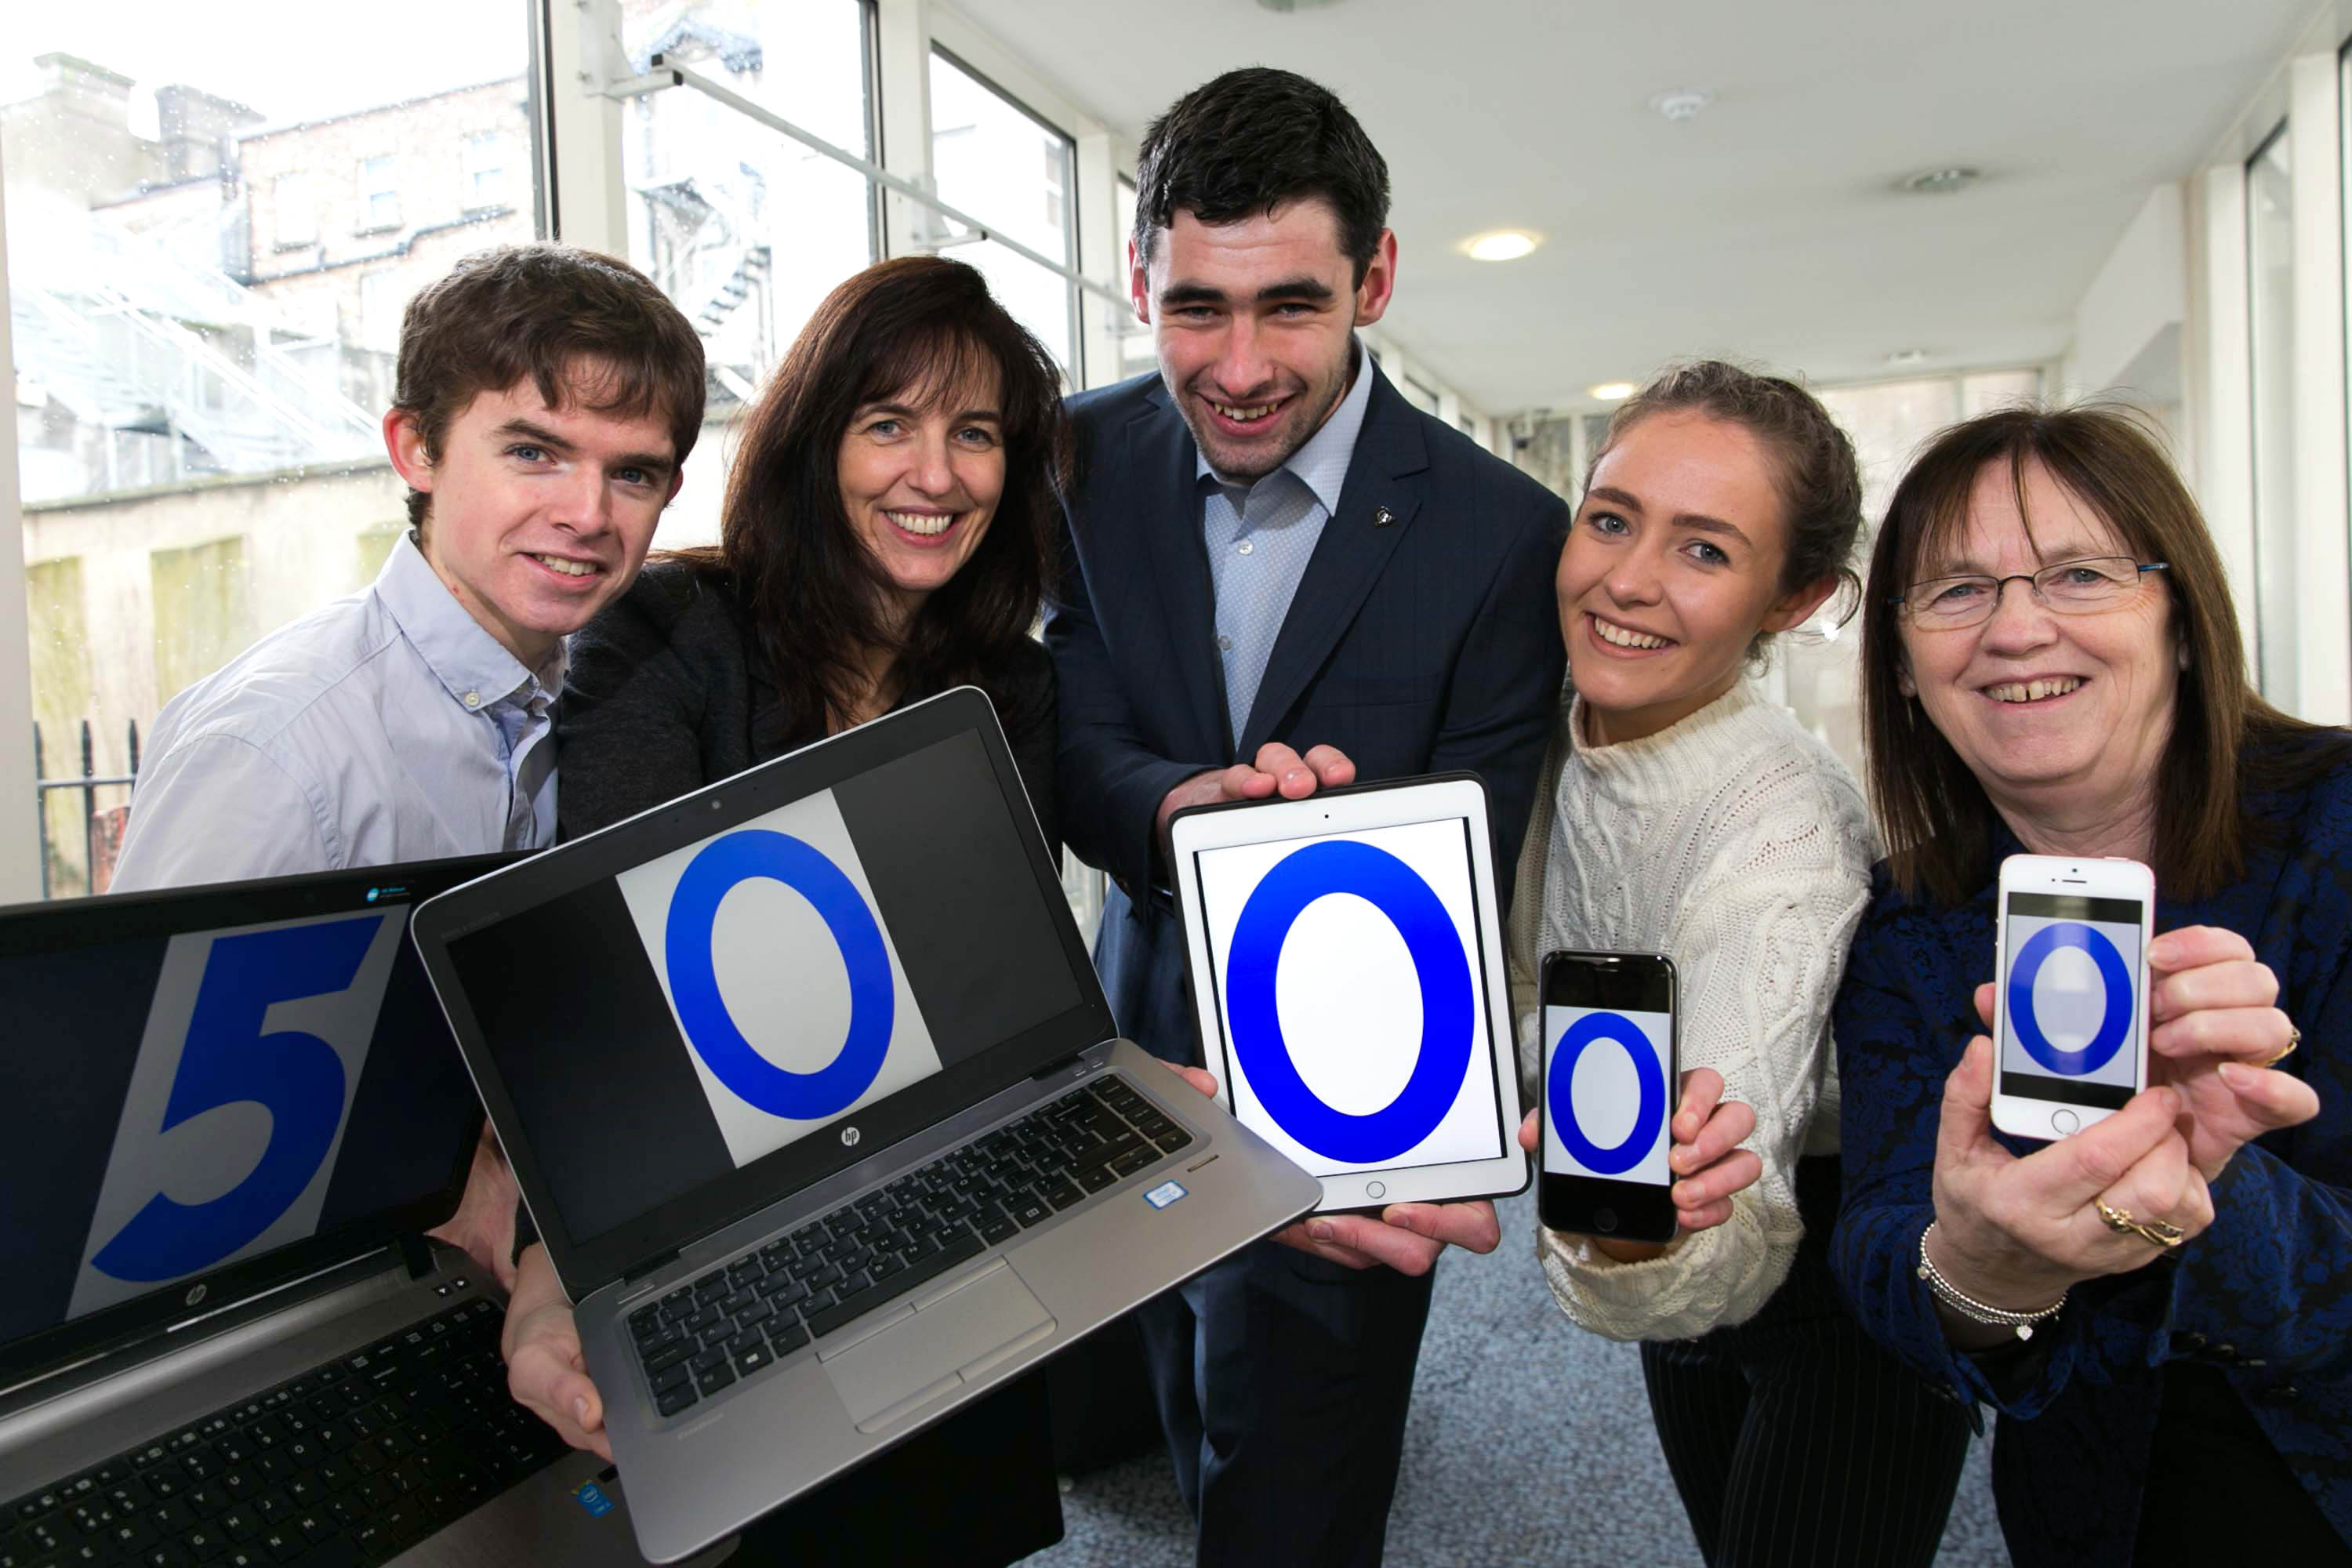 SciFest 2018 coming to Limerick